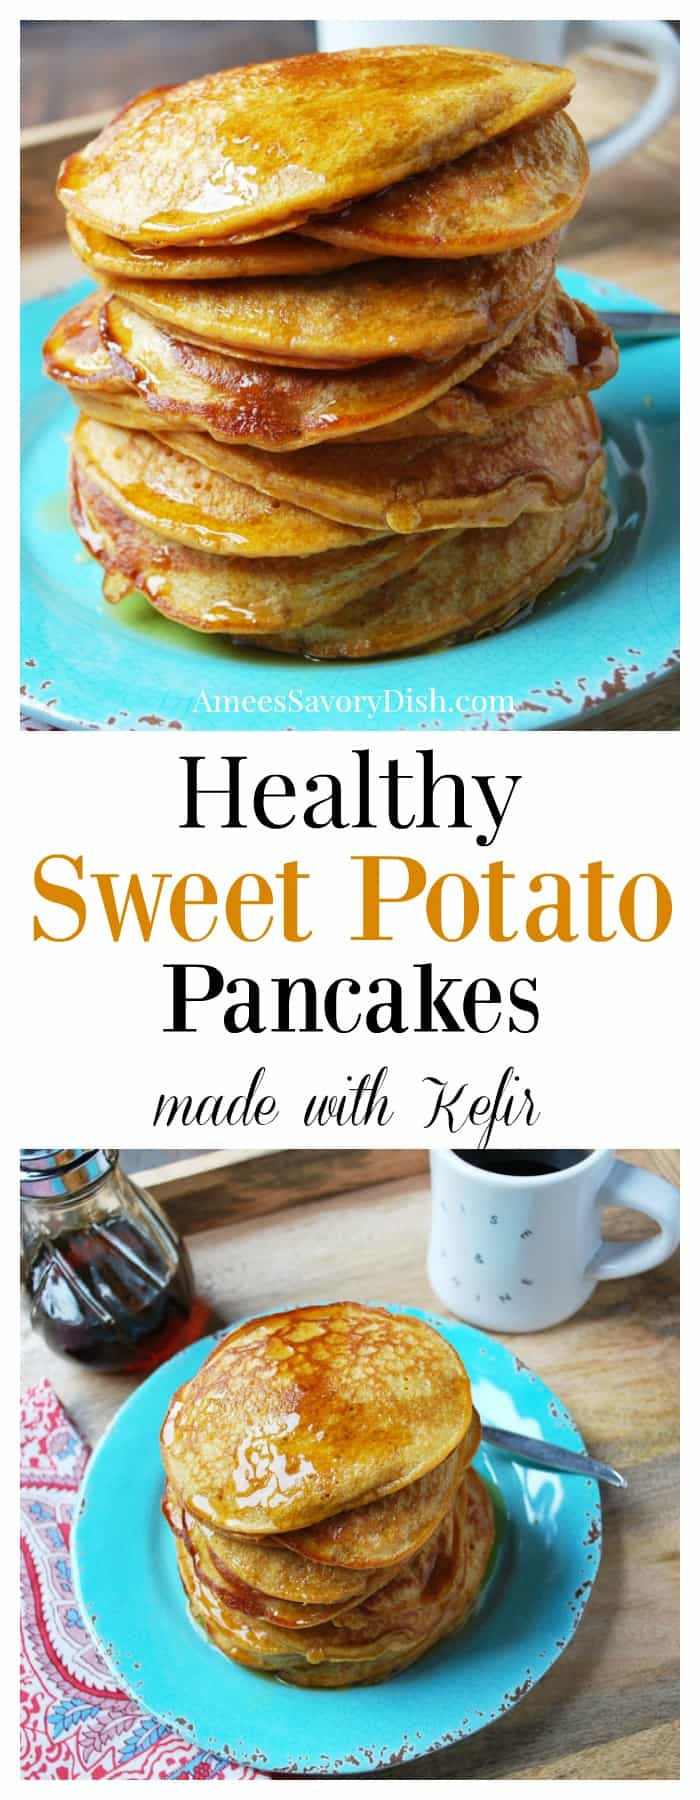 A recipe for sweet potato pancakes made with sweet potatoes, gut-friendly kefir, and a blend of unbleached flour and oat flour. Healthy, tasty, and simple! #pancakes #kefir #healthypancakes #sweetpotatopancakes via @Ameessavorydish